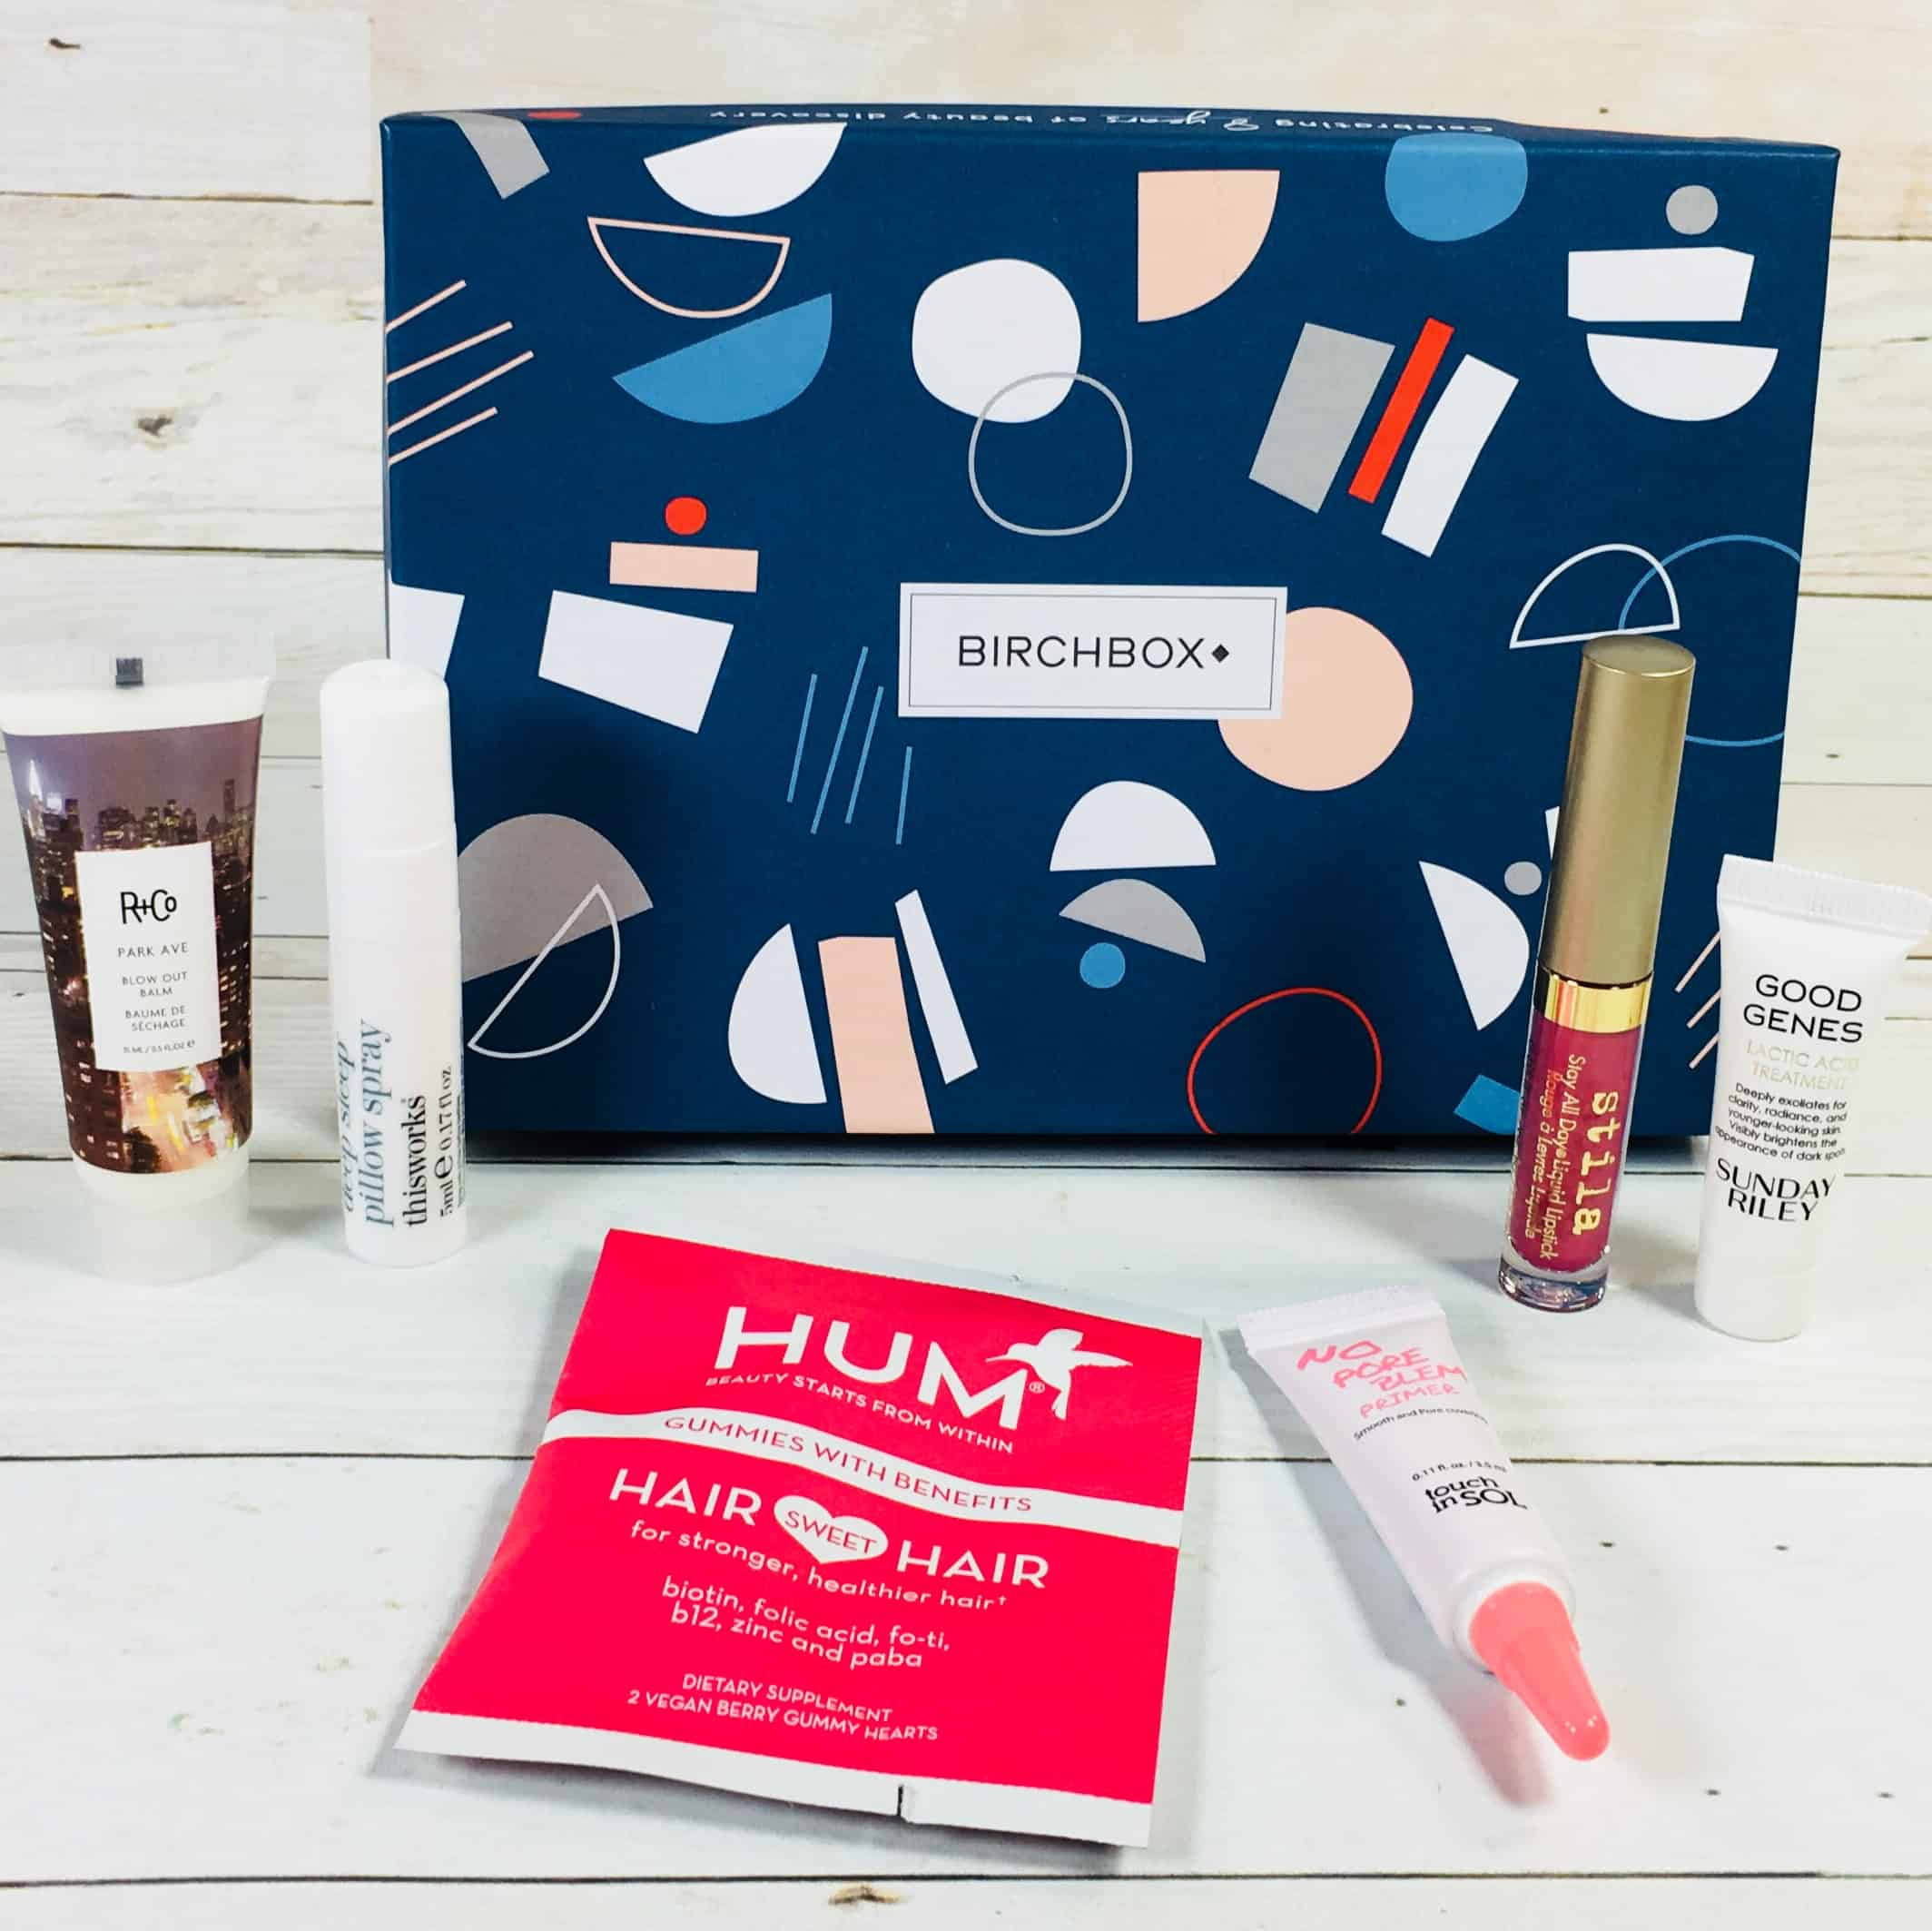 Birchbox September 2018 Curated Box Review + Coupon!